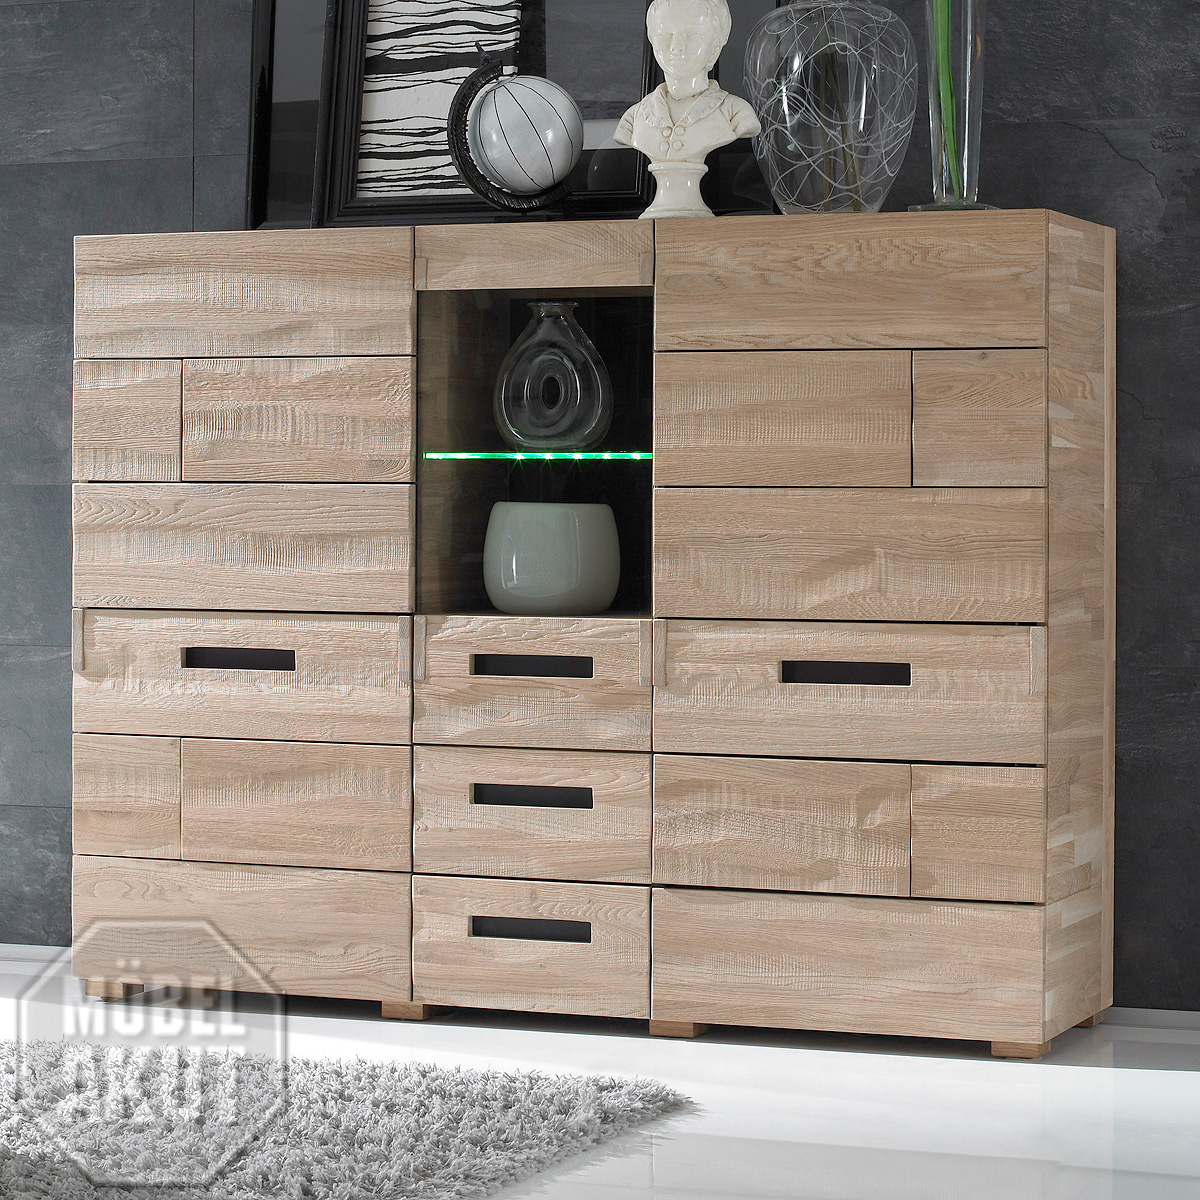 highboard amor kommode sideboard fronten in eiche spaltholz massiv neu ebay. Black Bedroom Furniture Sets. Home Design Ideas